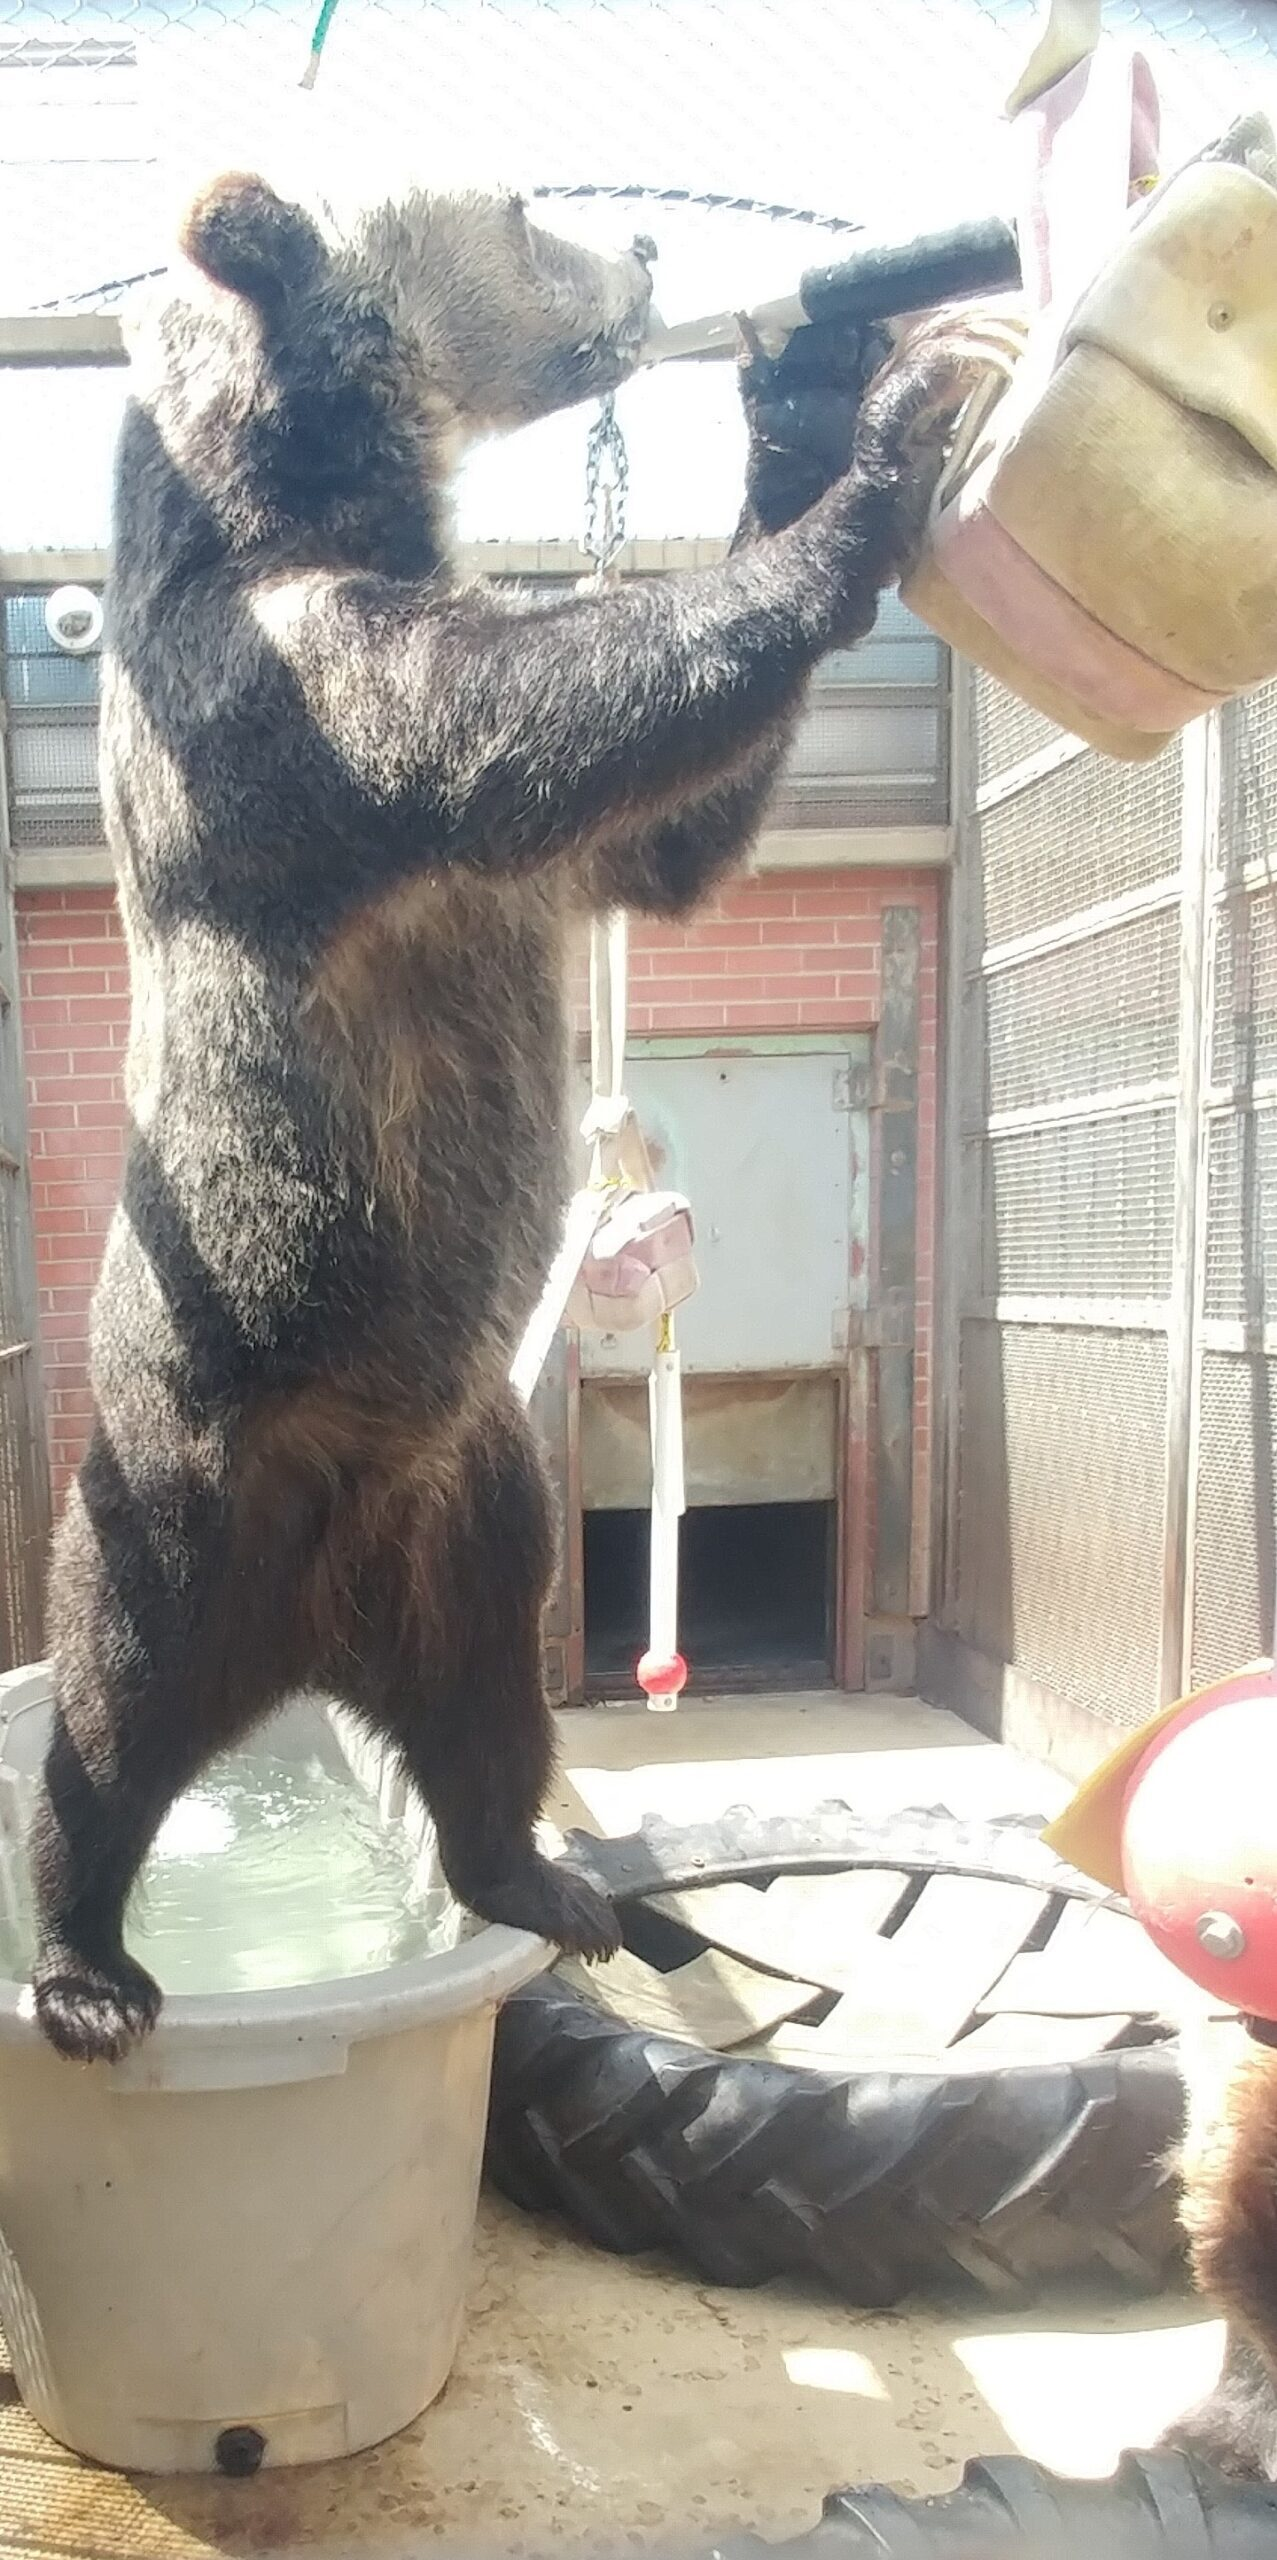 Oakley standing on tub to reach enrichment item